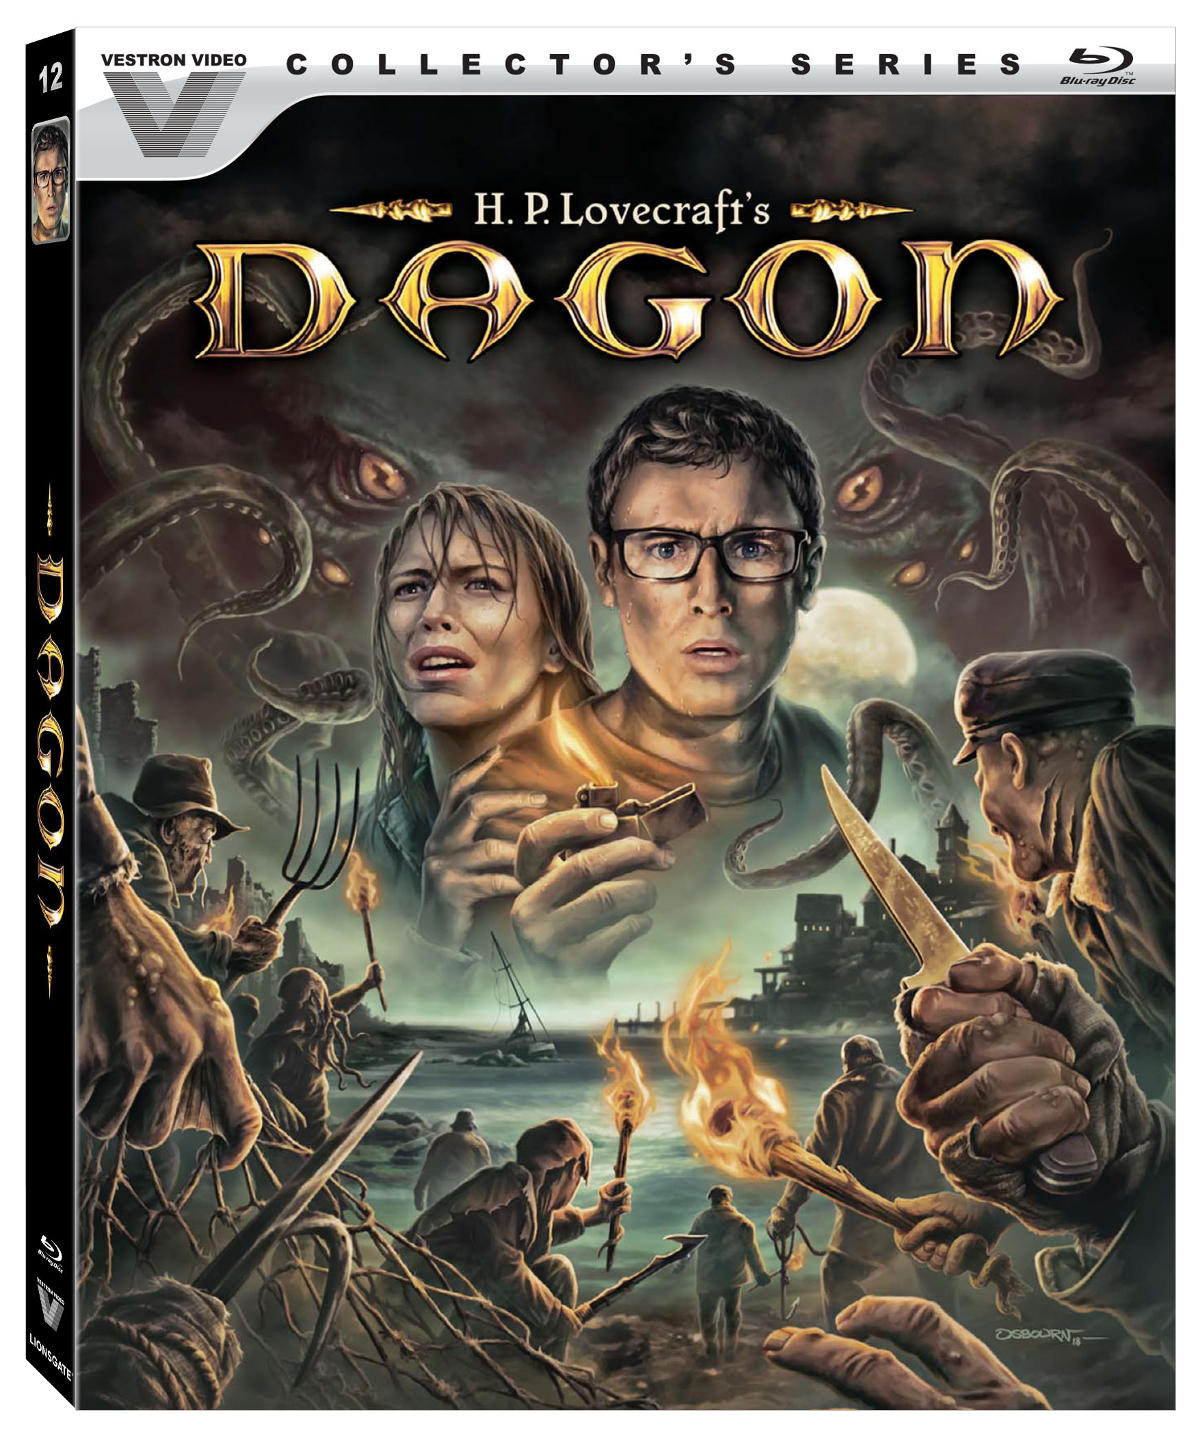 Stuart Gordon's DAGON to be Released as Vestron Video Collector's